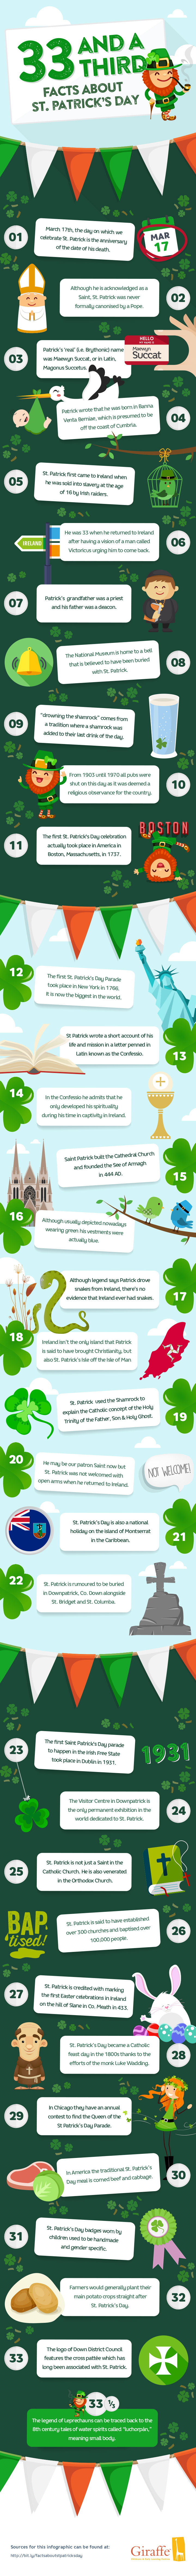 St. Patricks Day Facts